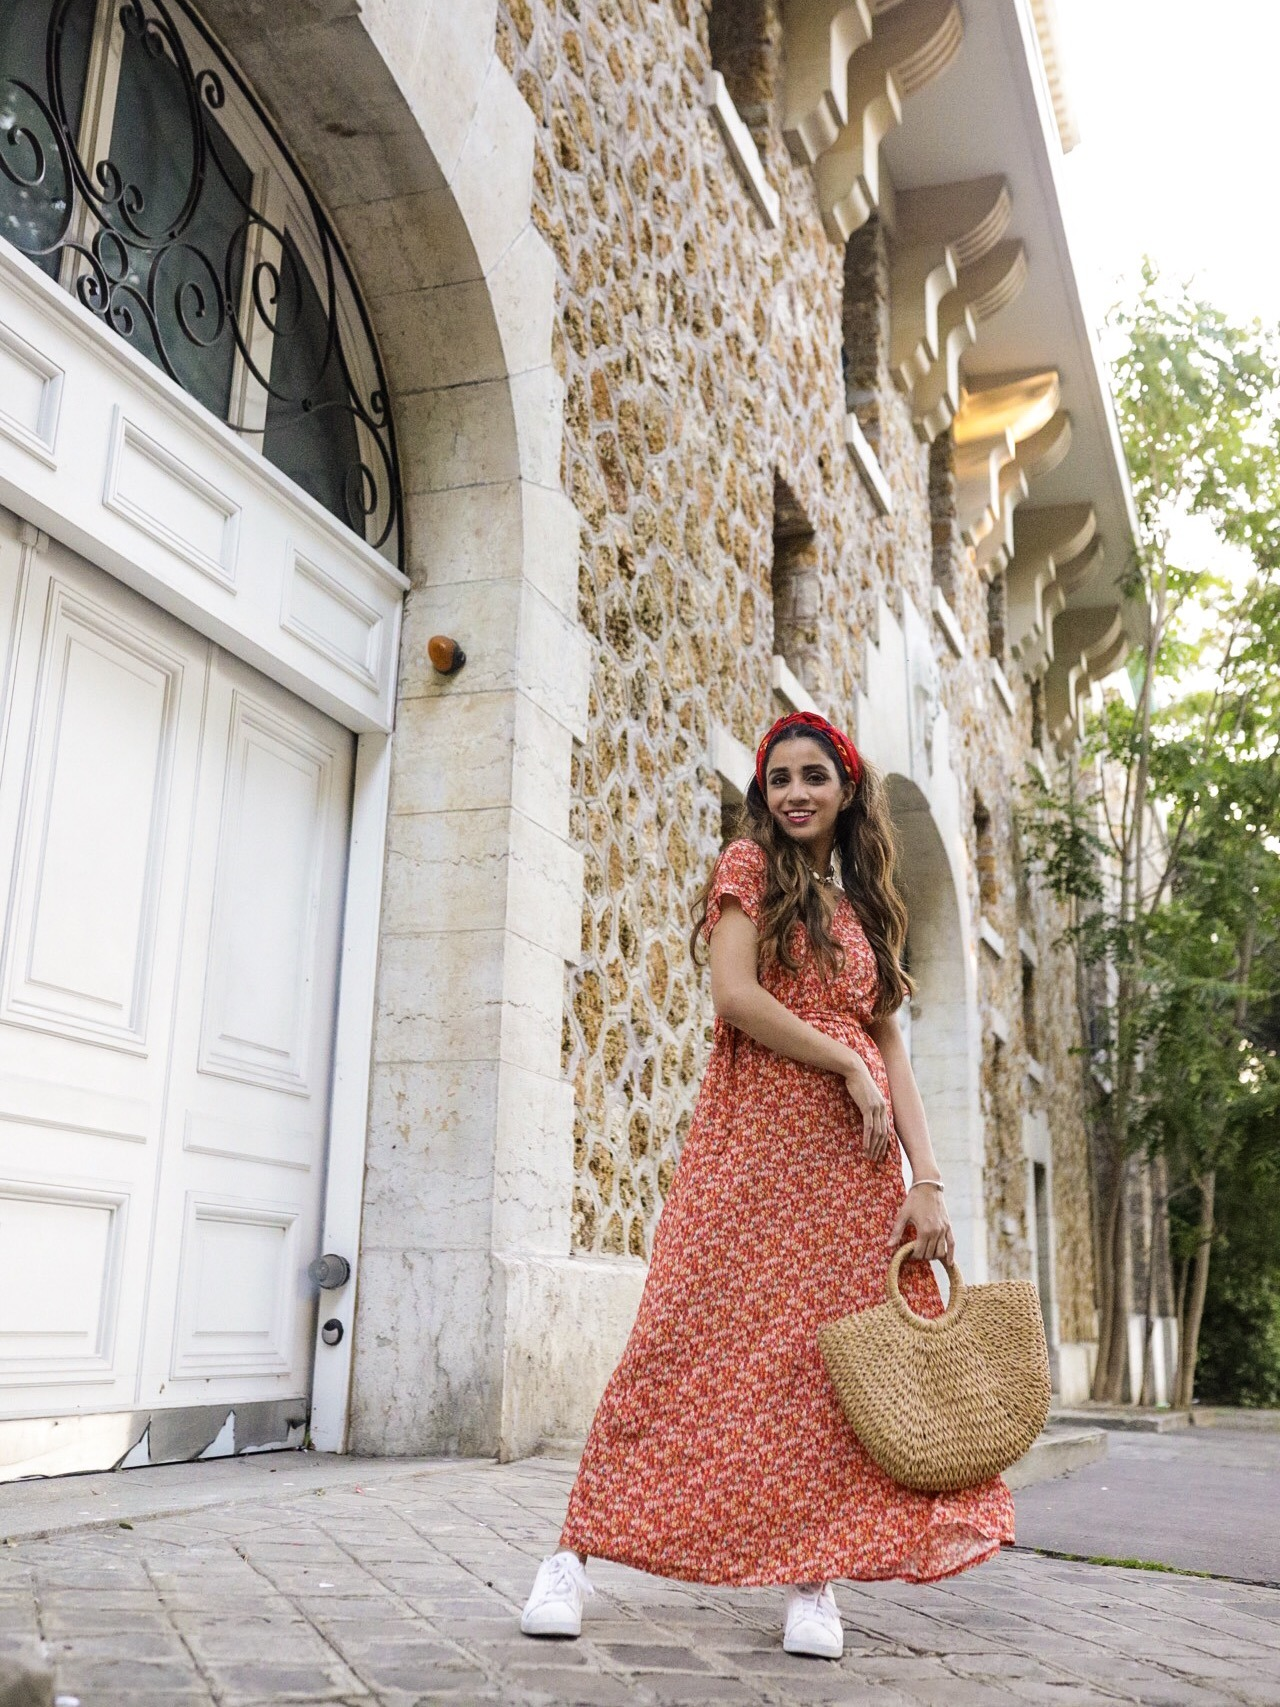 Summer Dress 2019 Roundups Part 1 Faiza Inam Sincerelyhumble maxi dresses Bouquet crossover dress Maison Simons 1